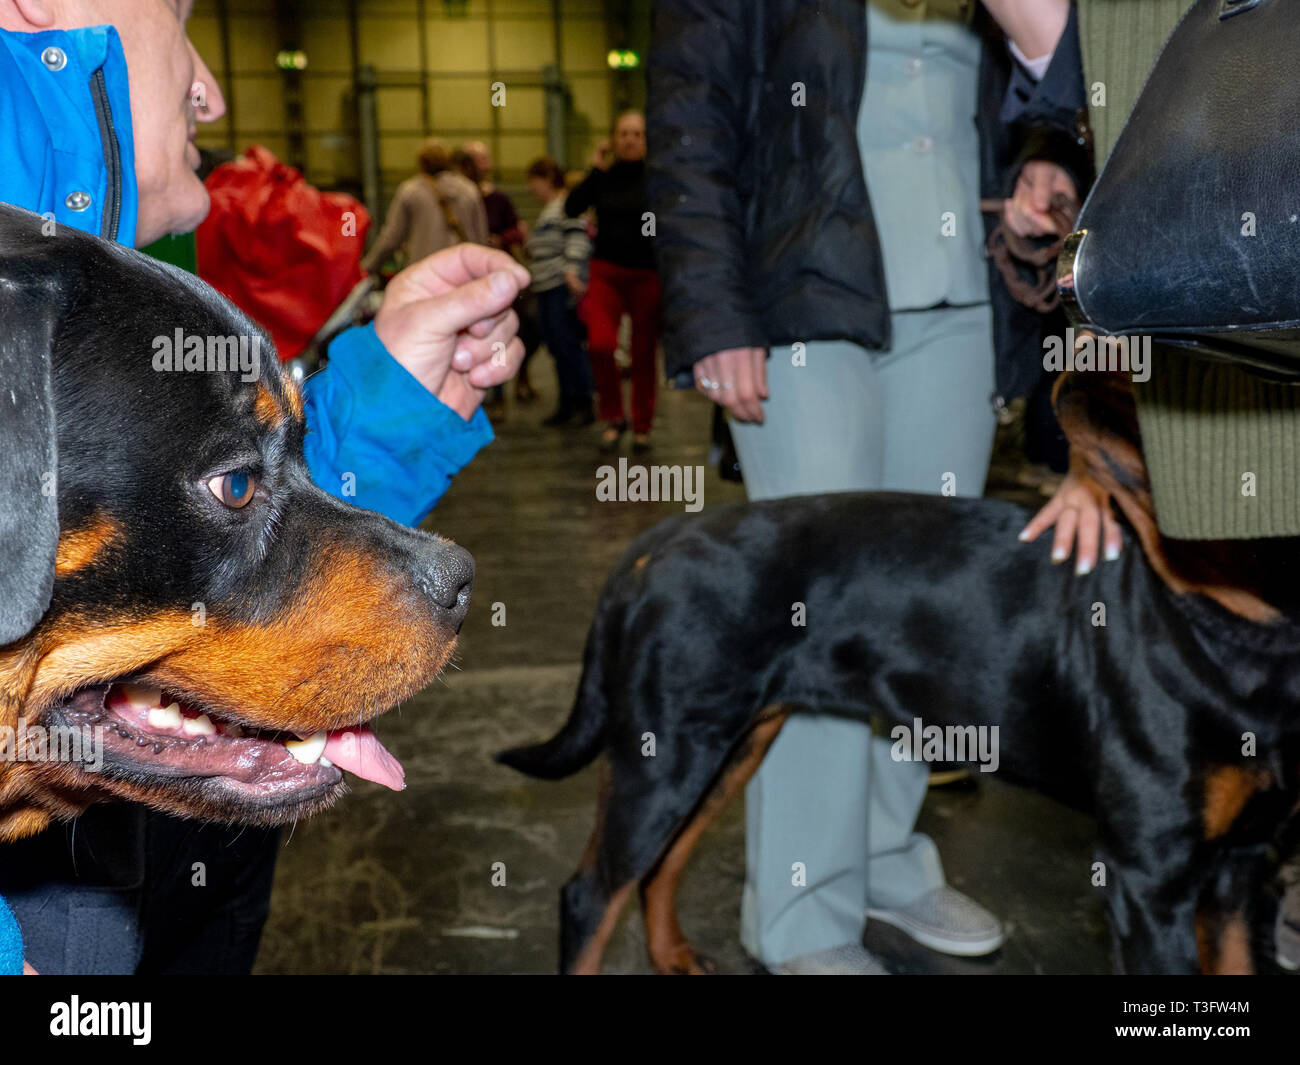 BIRMINGHAM, ENGLAND - MARCH 08: Rottweilers at National Exhibition Centre on March 8, 2019 in Birmingham, England. (Photo by Peter Dench/Getty Images) - Stock Image